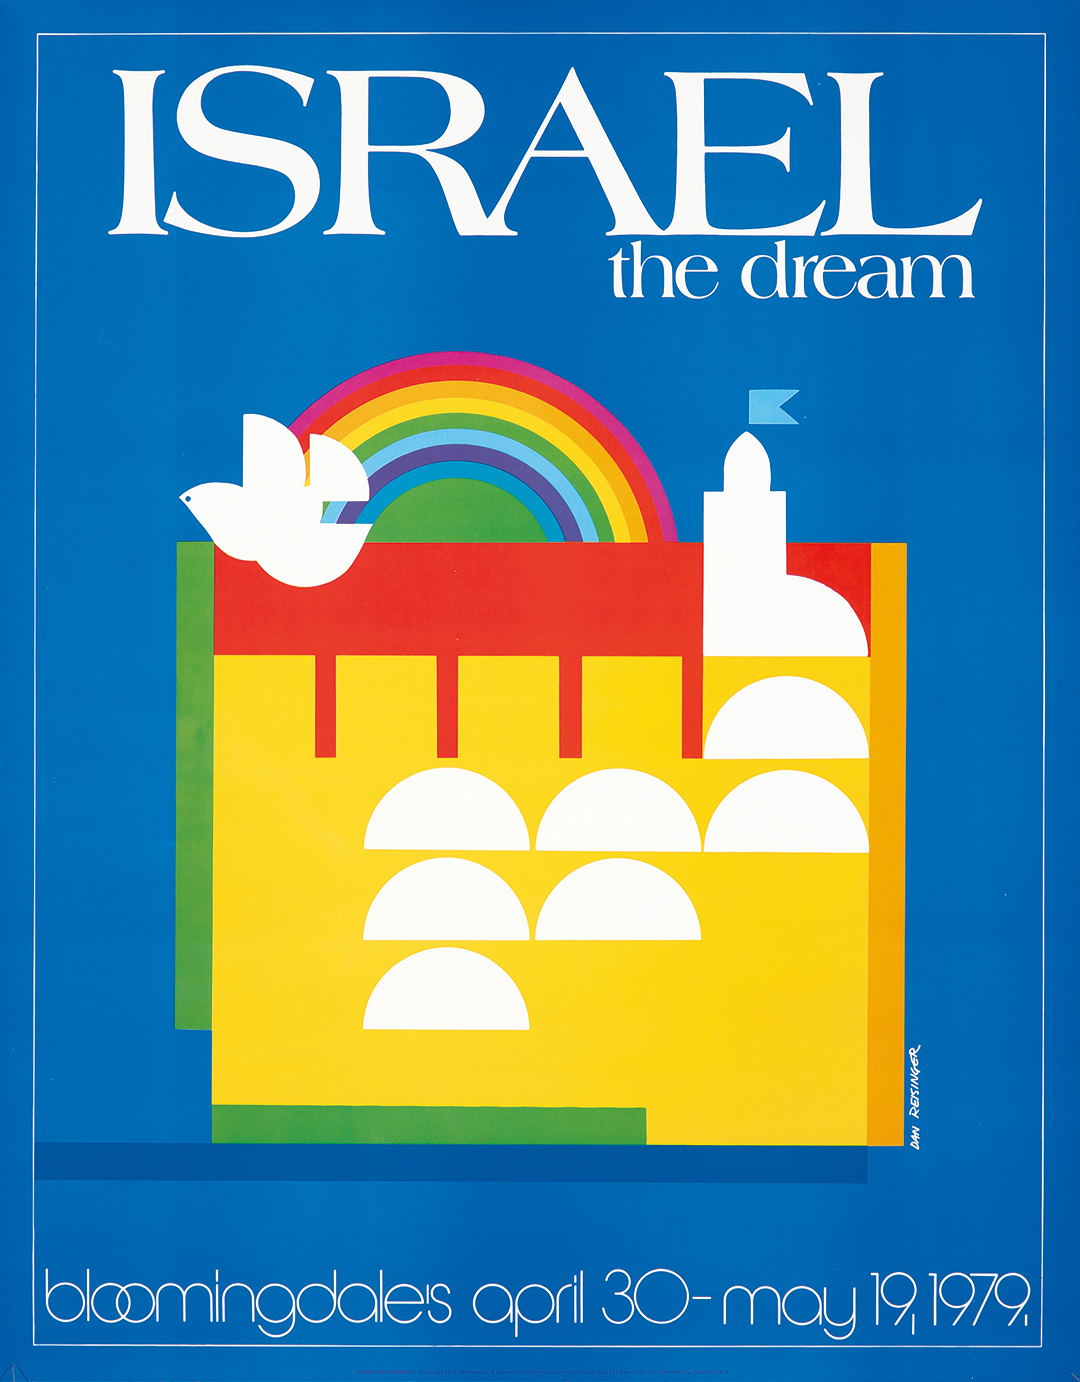 Israel - The Dream. 1979.